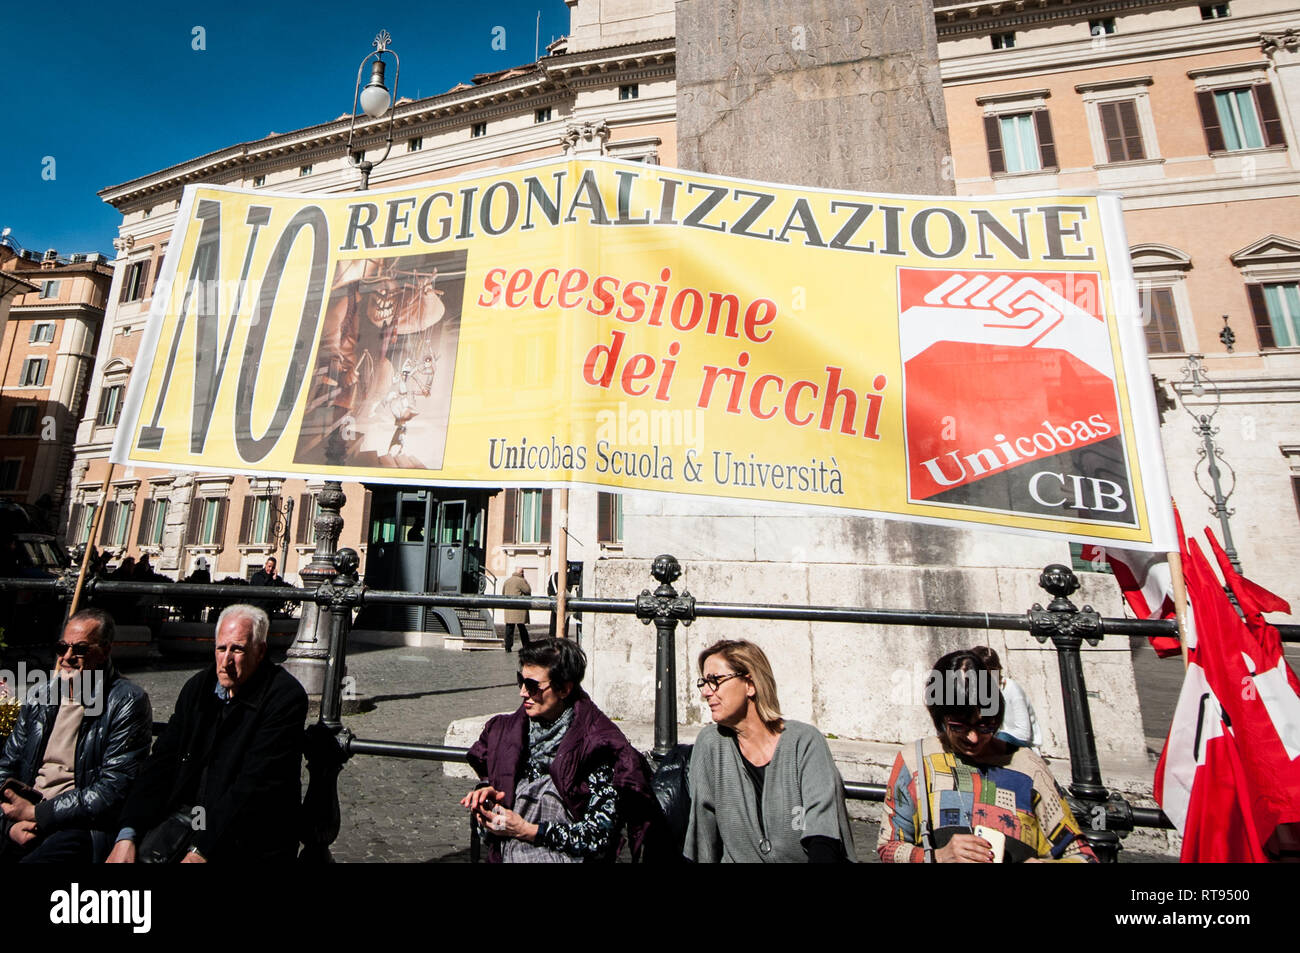 Rome, Italy. 27th Feb, 2019. Protest by the Unicobas trade union, in the Montectorio square, against regionalisation and the process of differentiated autonomy of schools and universities . Credit: Andrea Ronchini/Pacific Press/Alamy Live News - Stock Image